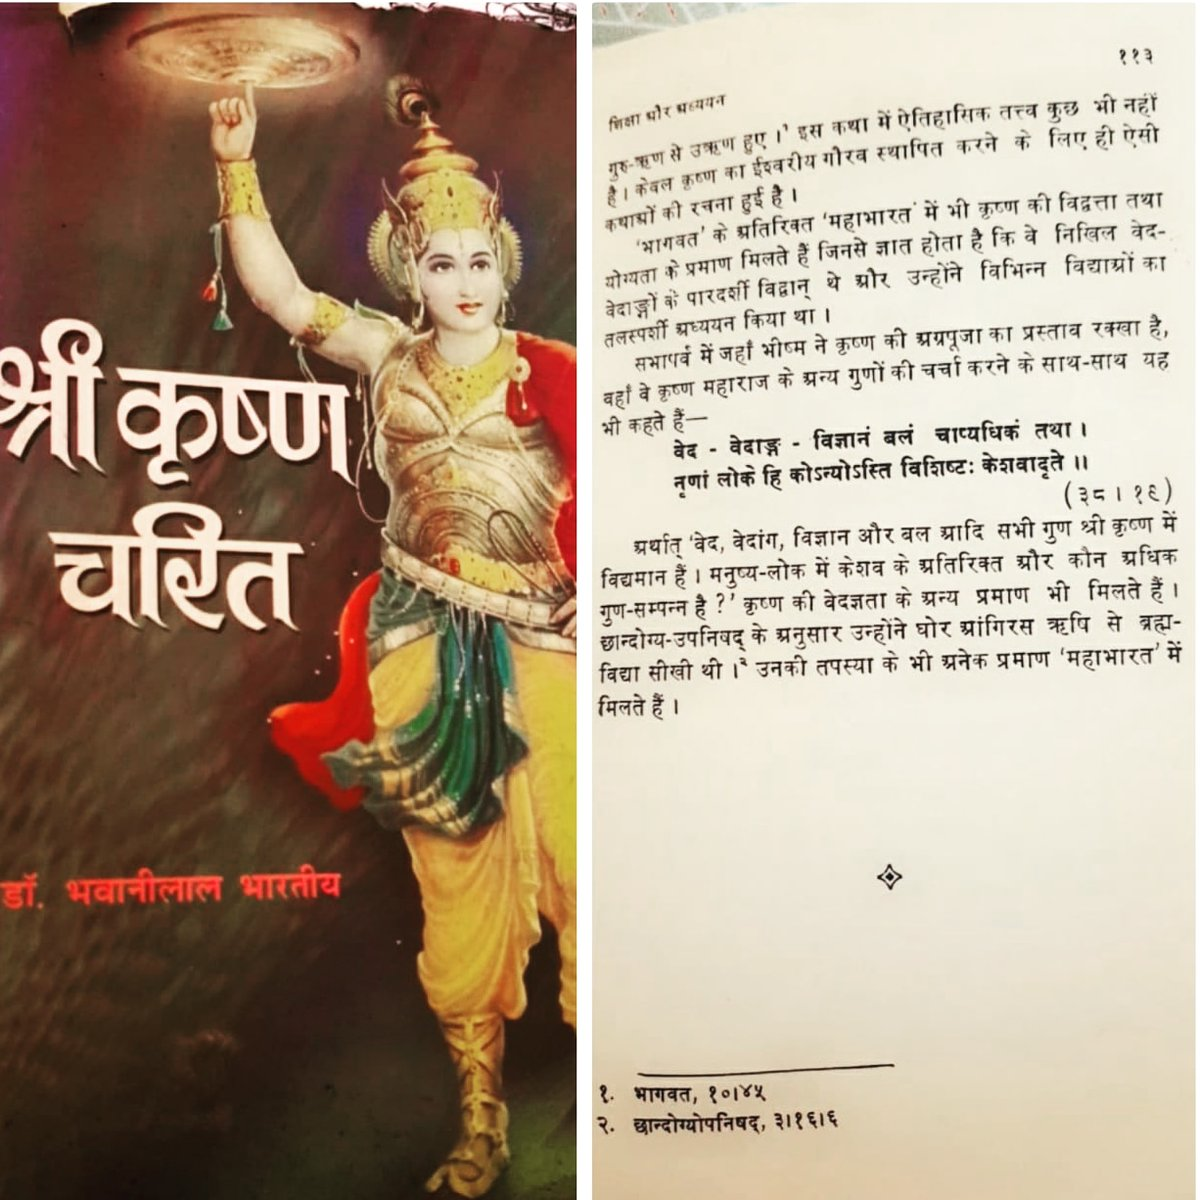 You are busy watching #Mirzapur   i am busy reading #shrikrishna Charit .. WE ARE NOT SAME BRO..  #Growth #improvement #Divine #JaiShreeRam #Hinduism #SanatanDharma #rjvartika @YehHaiMirzapur https://t.co/Sxr3Fi4P7U